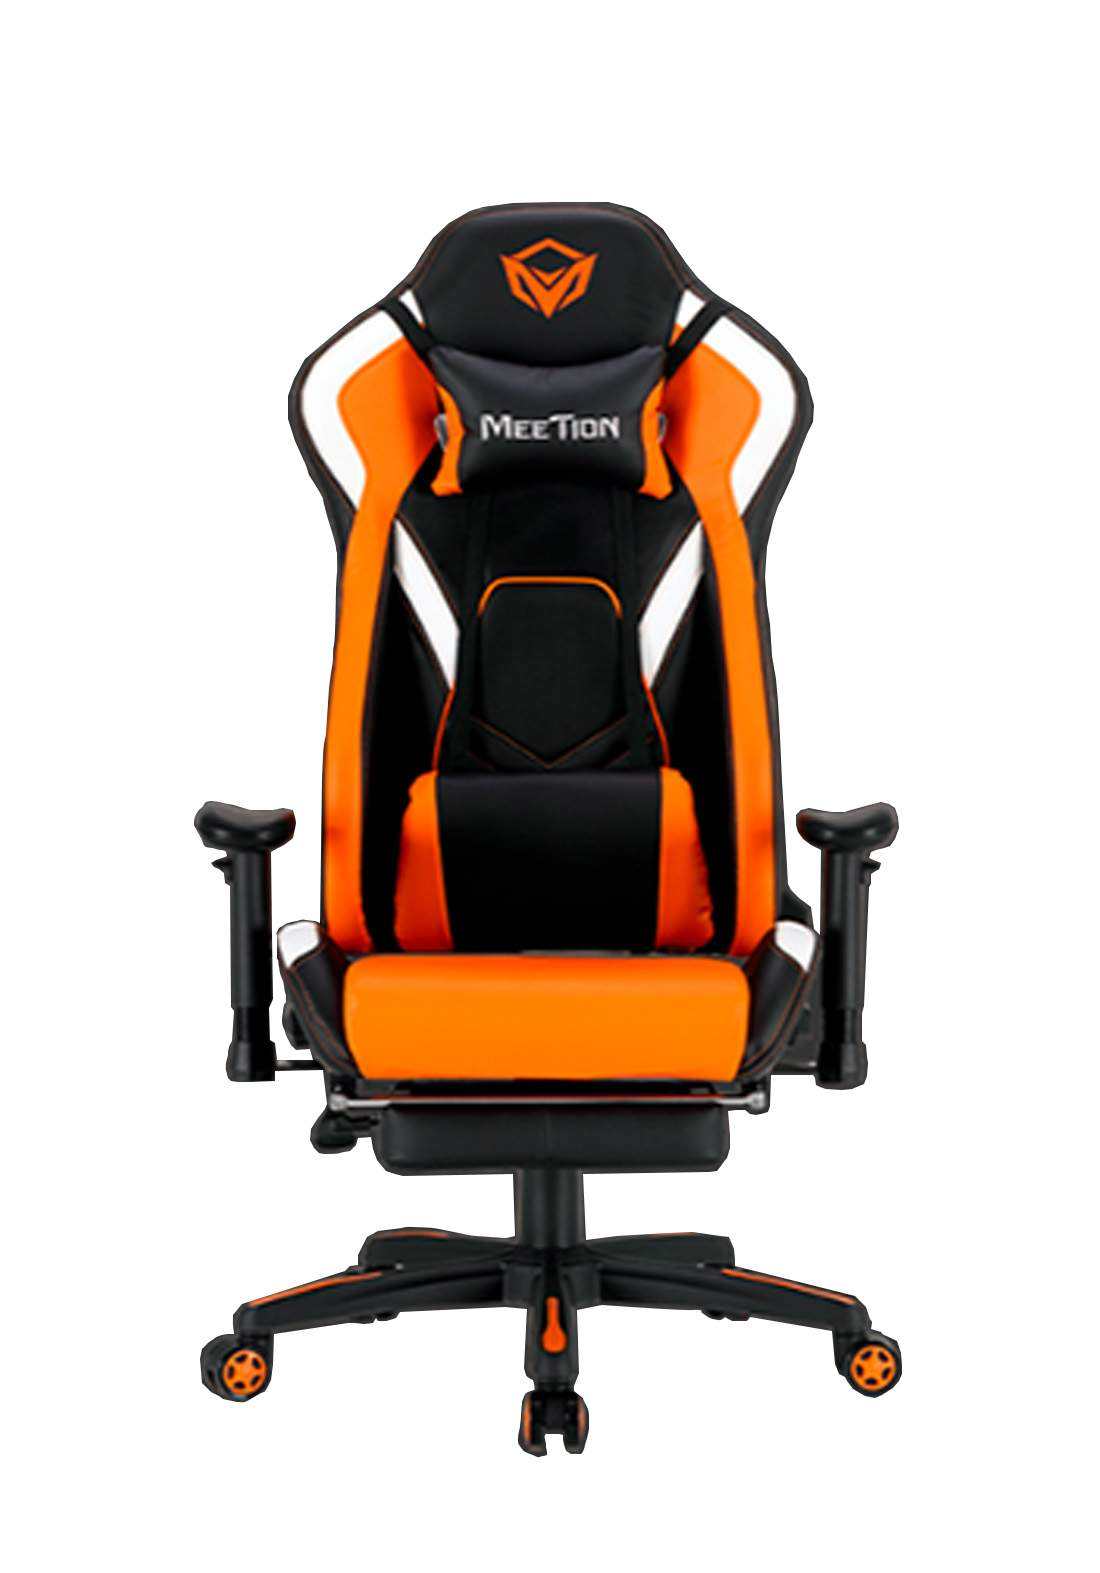 Meetion CHR22 Leather Reclining Gaming E-Sport Chair with Footrest - Orange  كرسي ألعاب